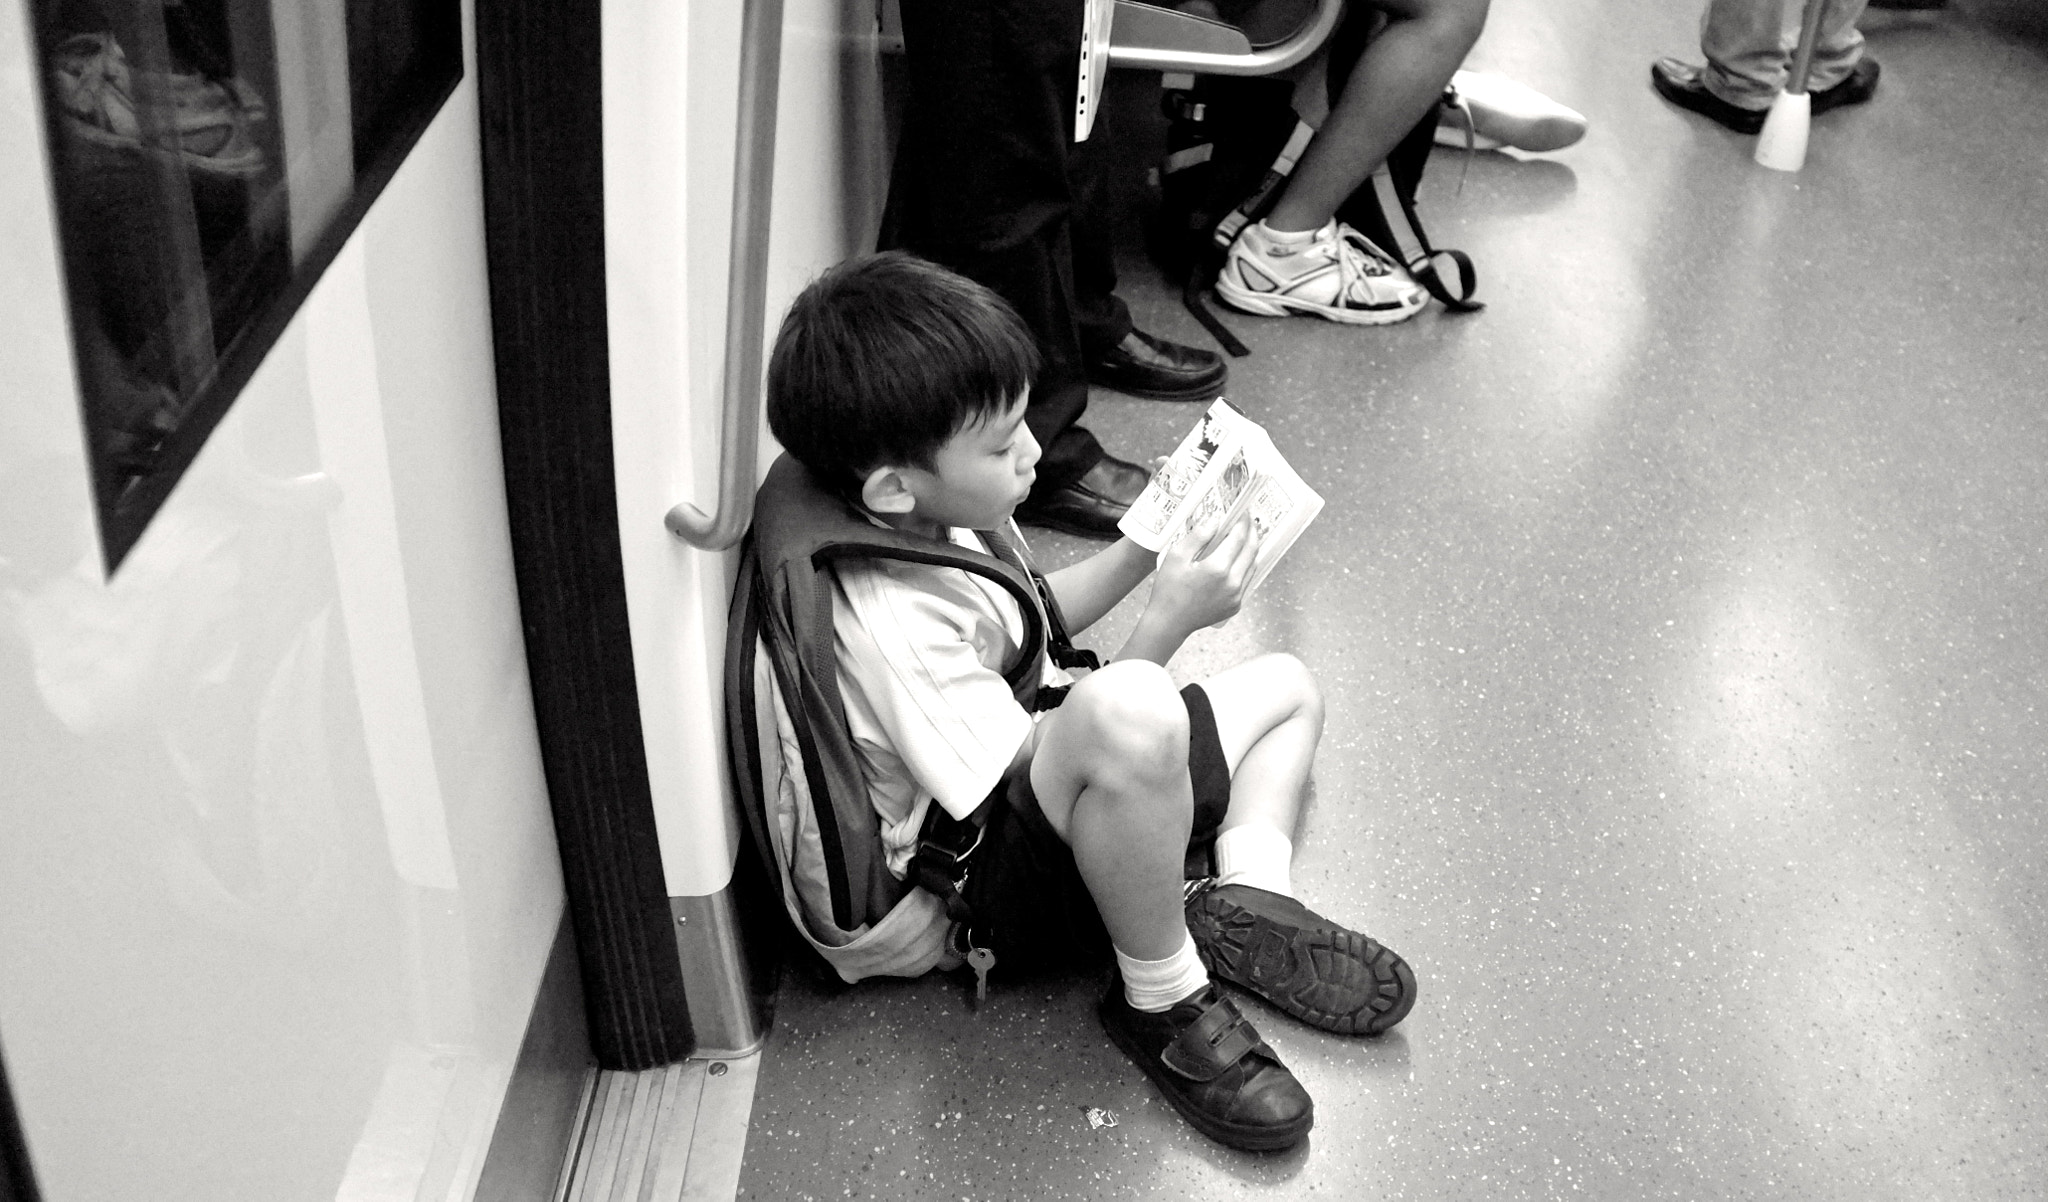 Photograph Manga reading Boy. by Pete Chang on 500px